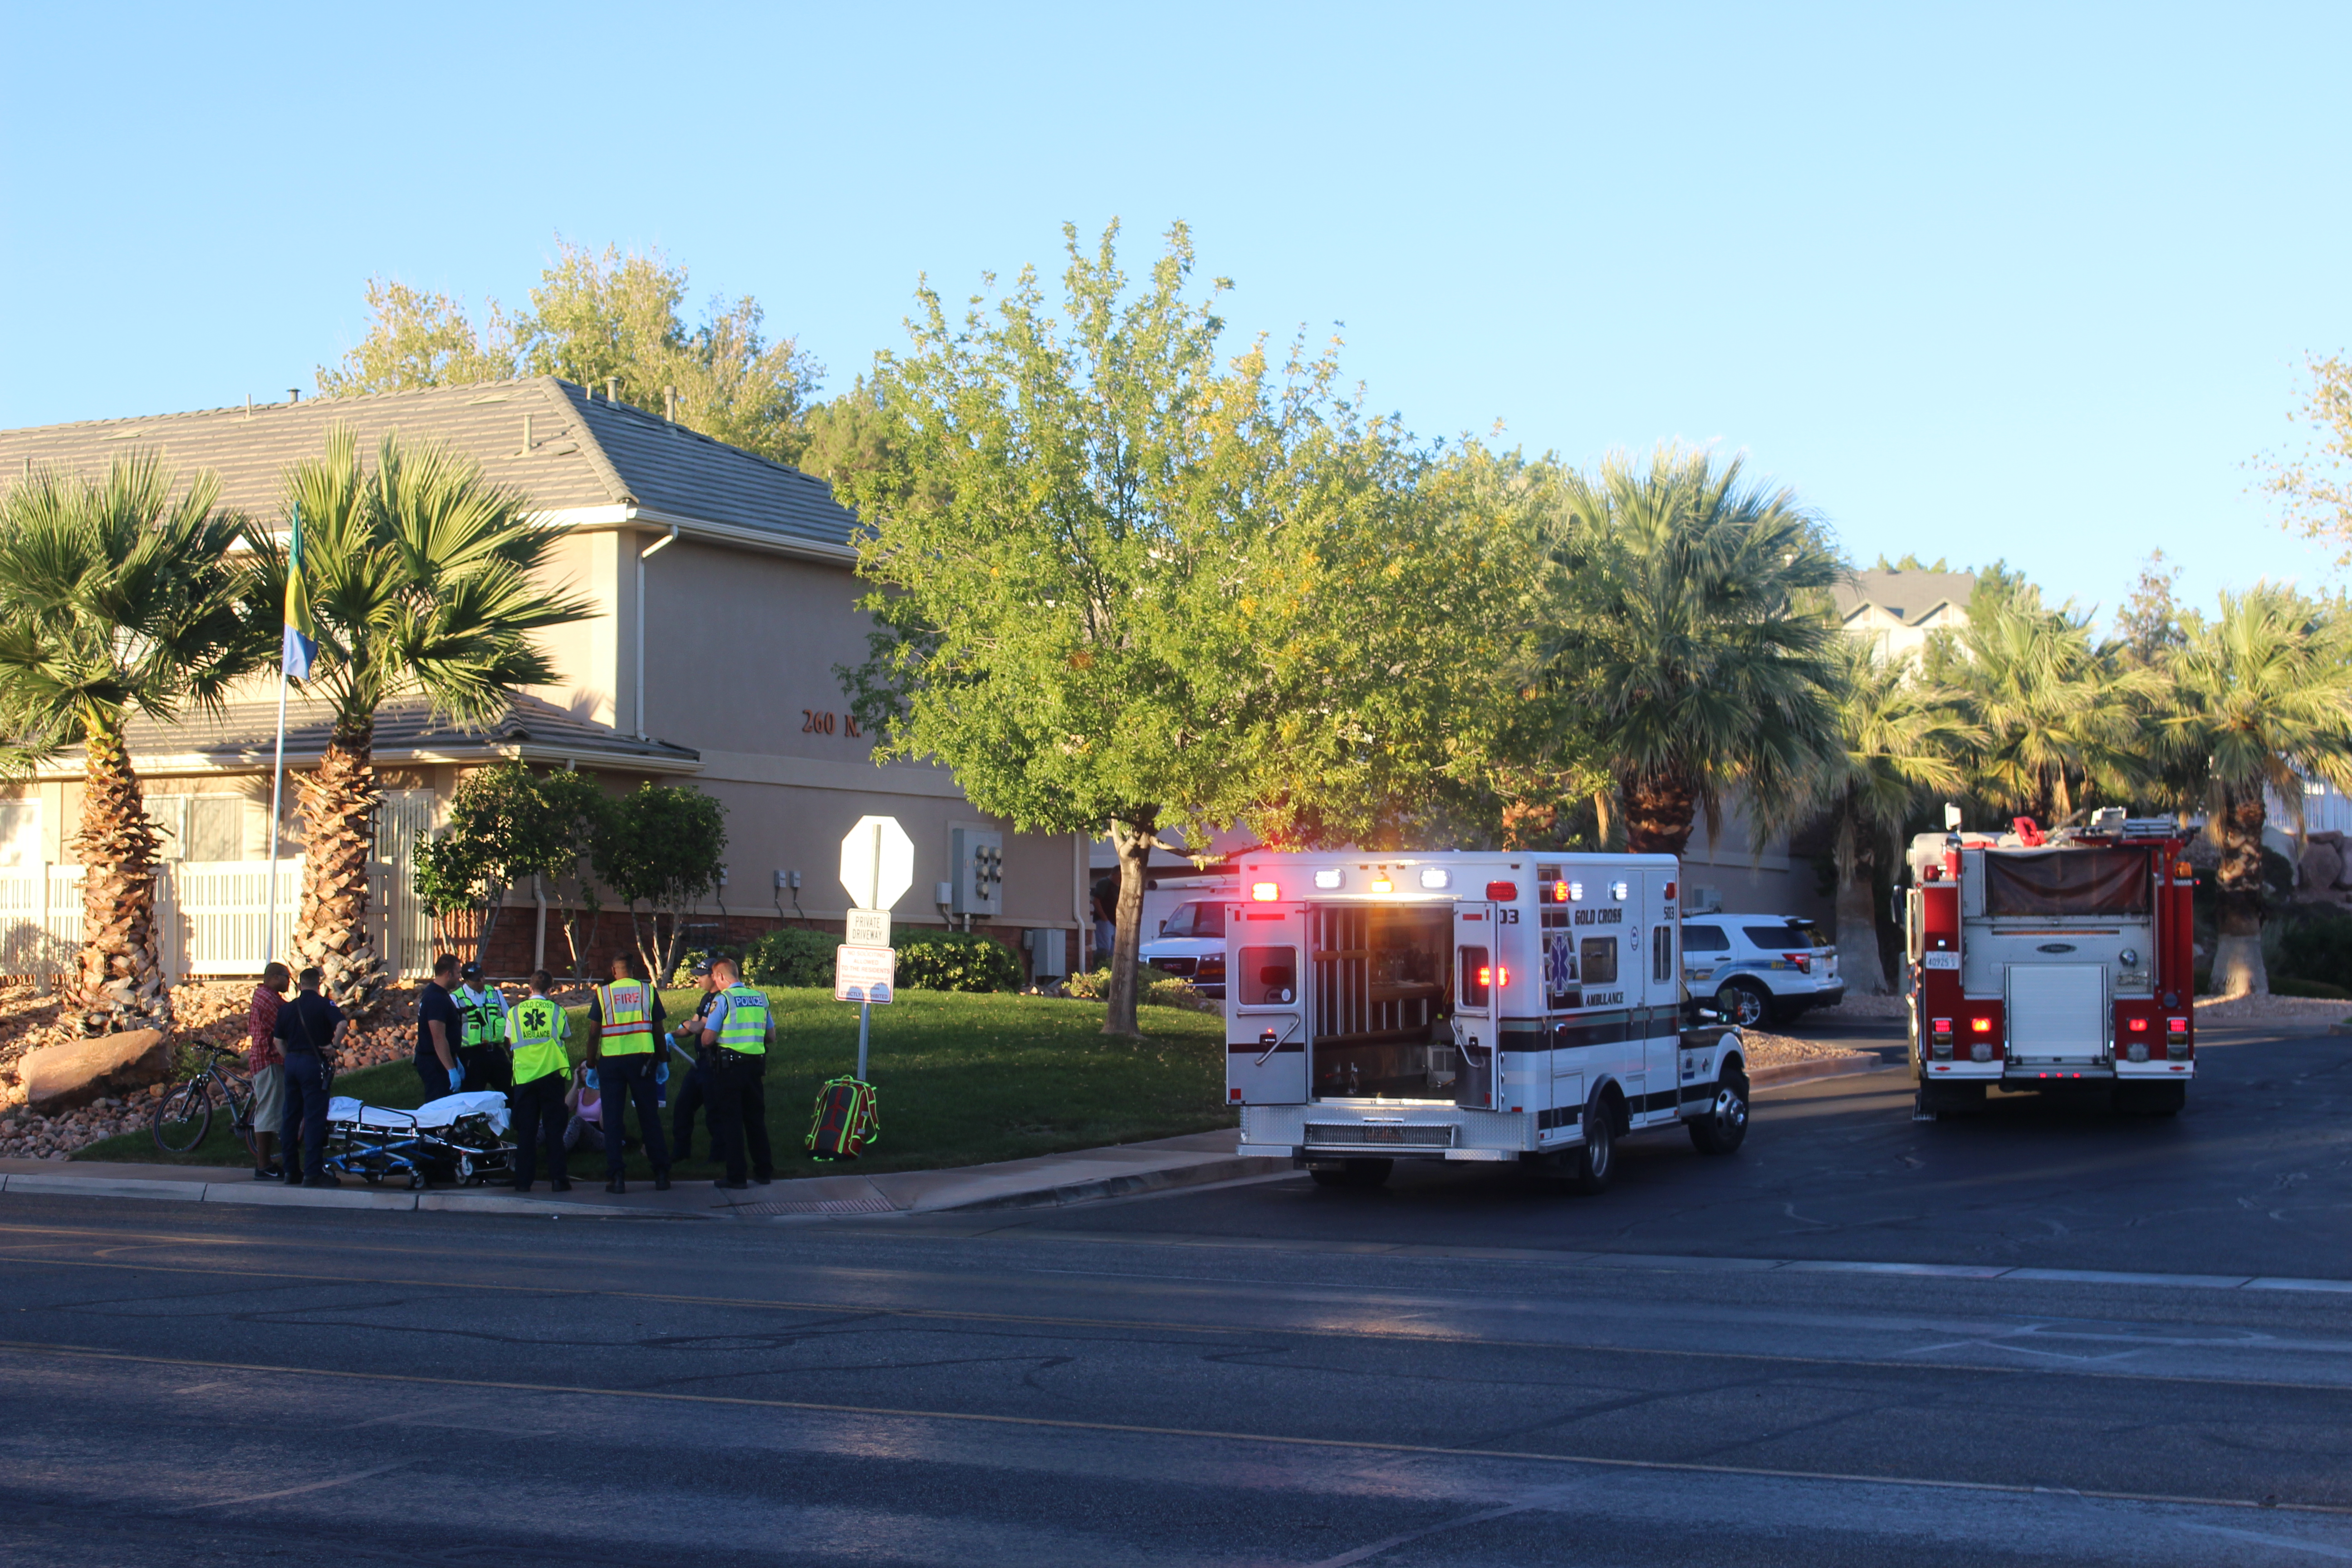 Emergency crews prepare a bicyclist who was hit by a car for transport, St. George, Utah, Oct. 16, 2016 | Photo by Joseph Witham, St. George News